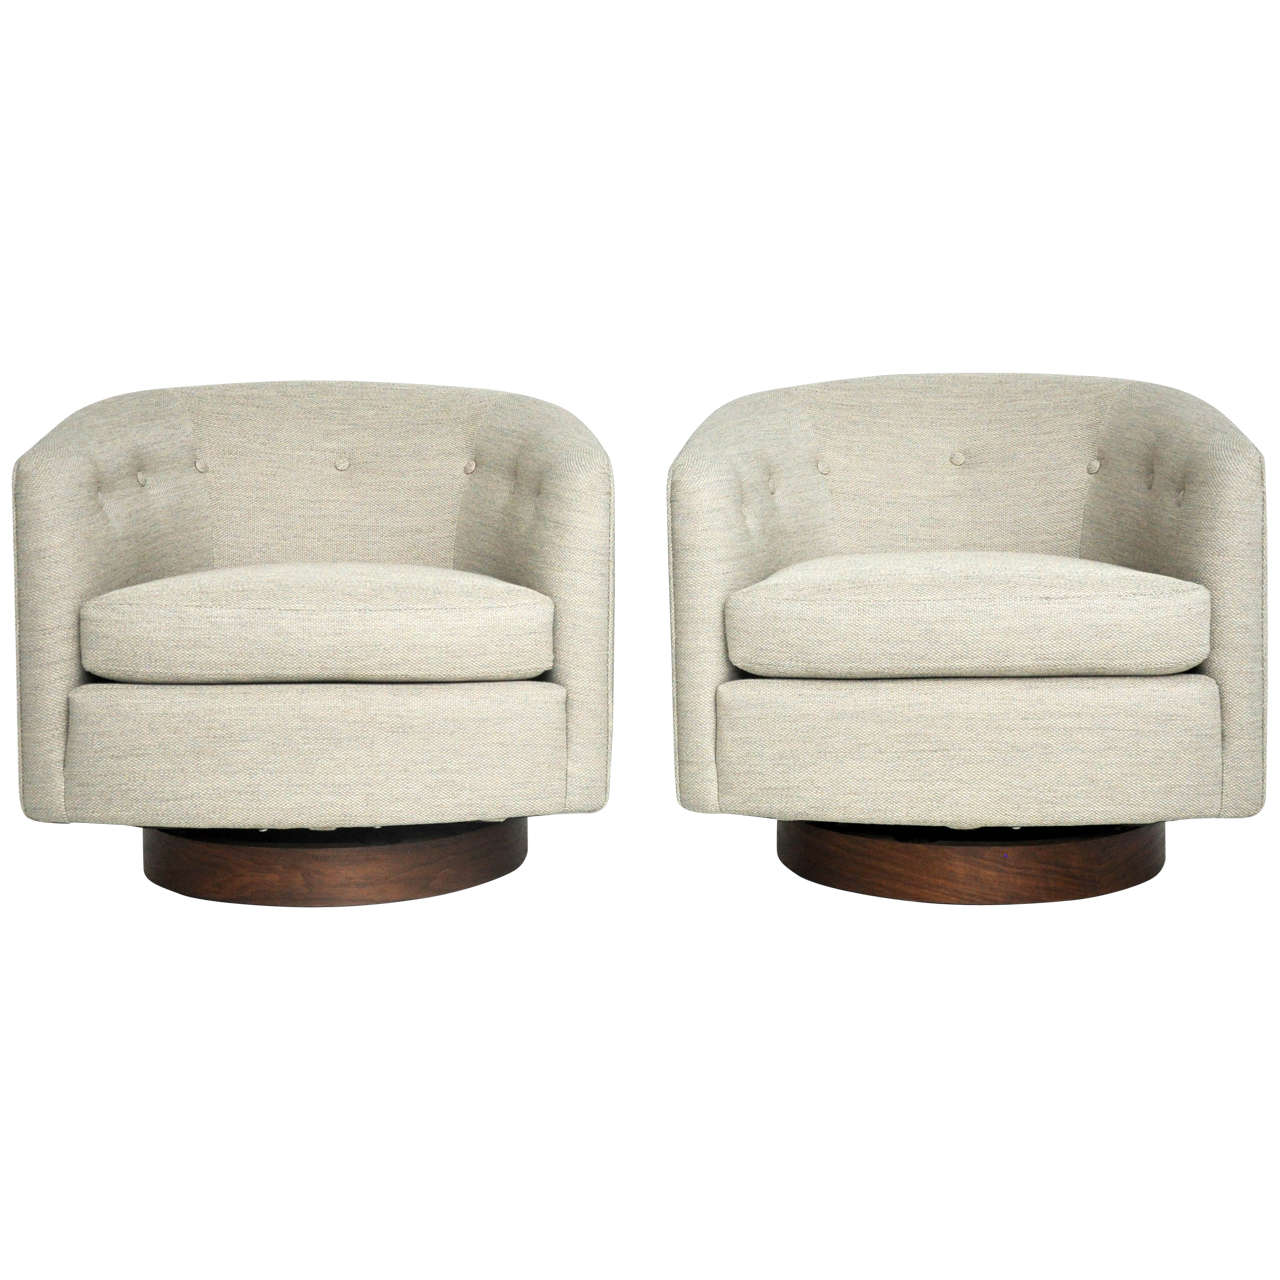 swivel lounge chairs two person folding lawn chair milo baughman at 1stdibs for sale